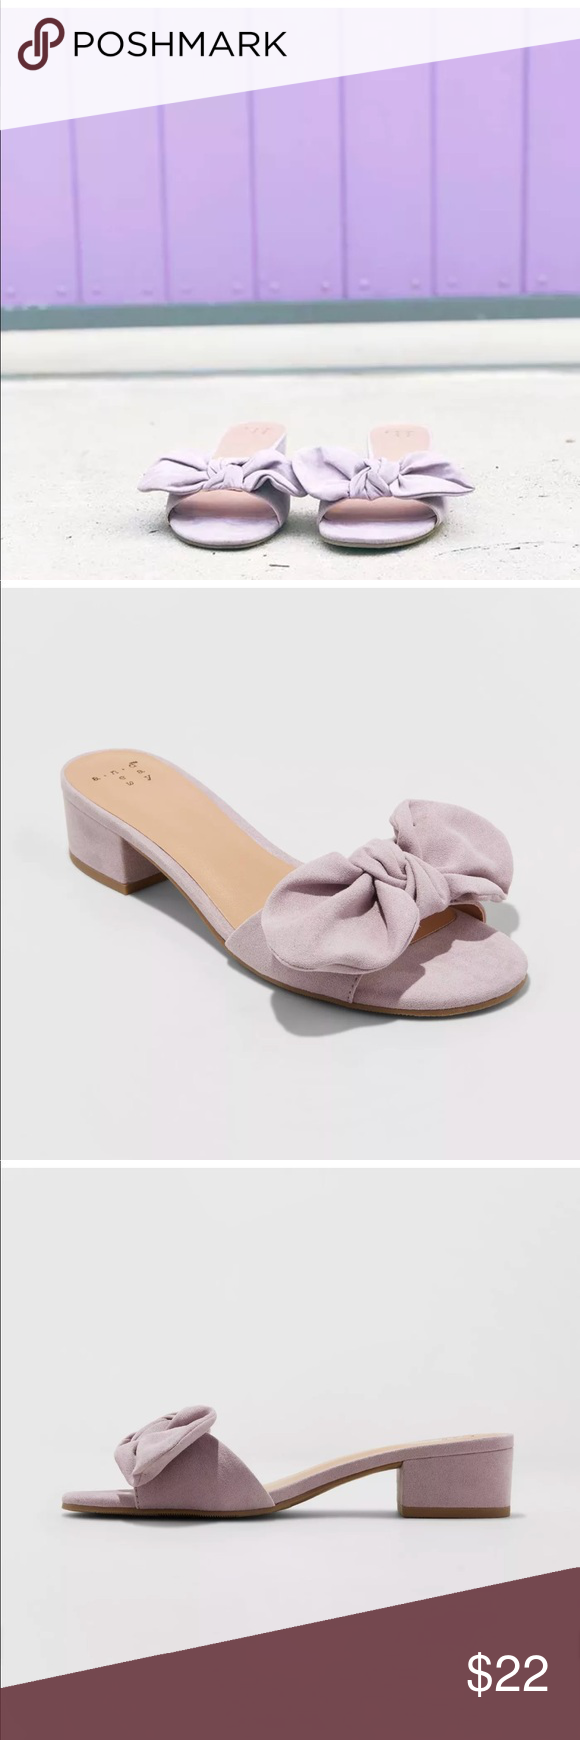 02c3fa7265af A NEW DAY pastel lavender bow slides mules sandal NWT A New Day Lavender  Bow Slide Sandals - small chunky block heel - size 6.5 - sold out at retail a  new ...